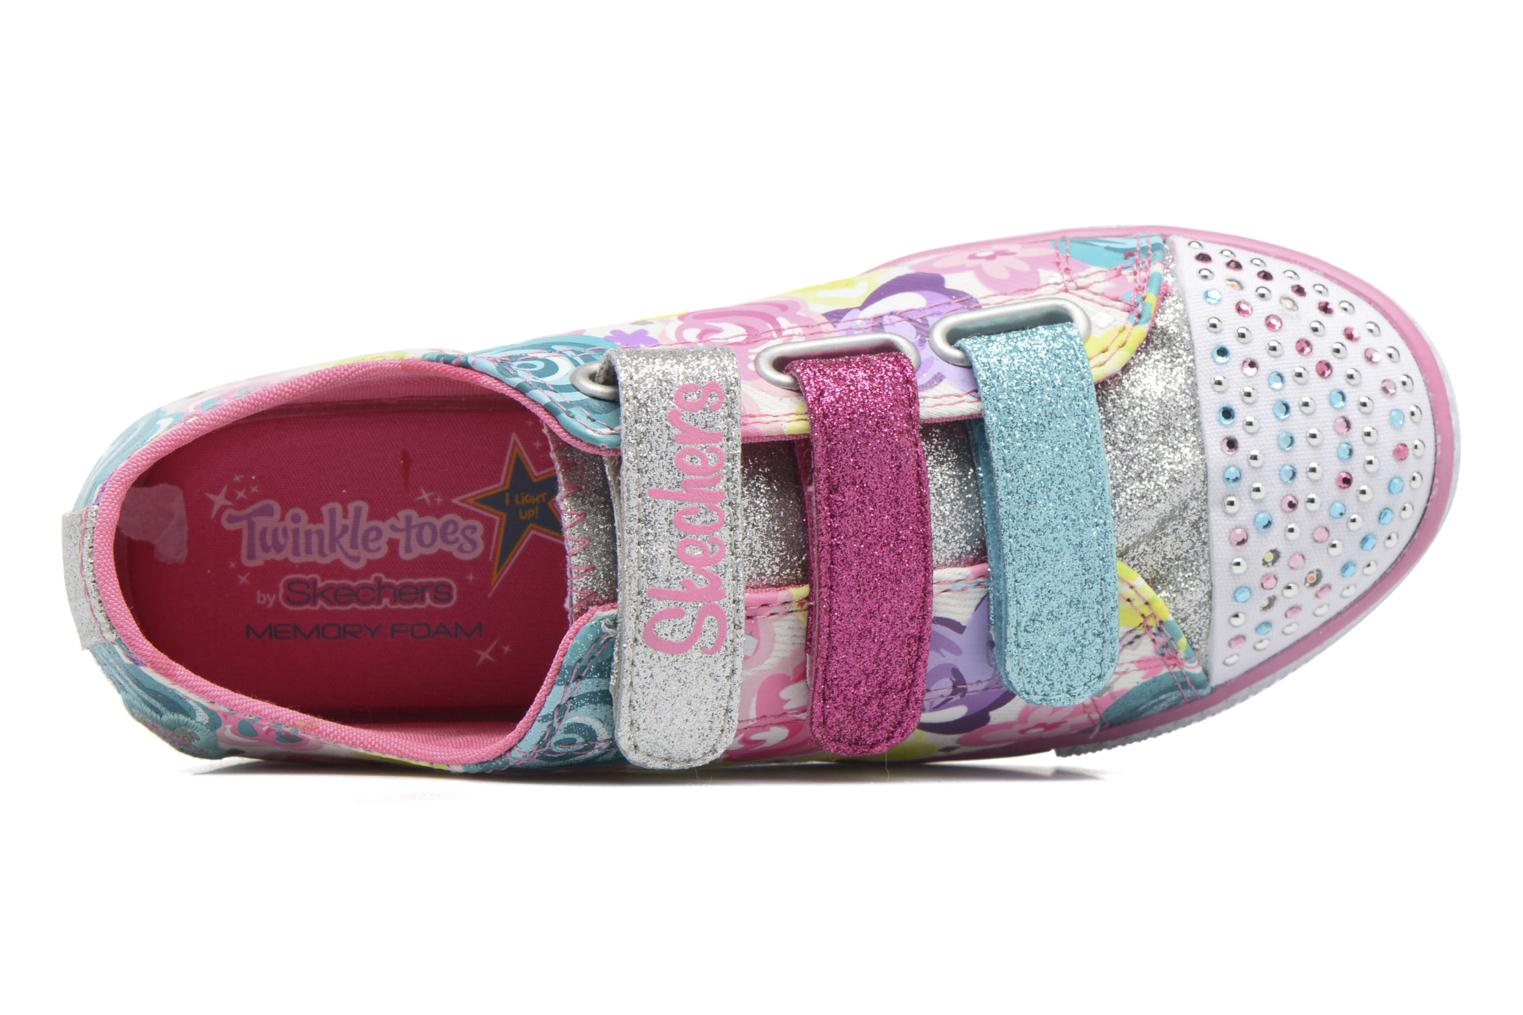 TwinkleChit Chat Glamour Glore White/multicolor